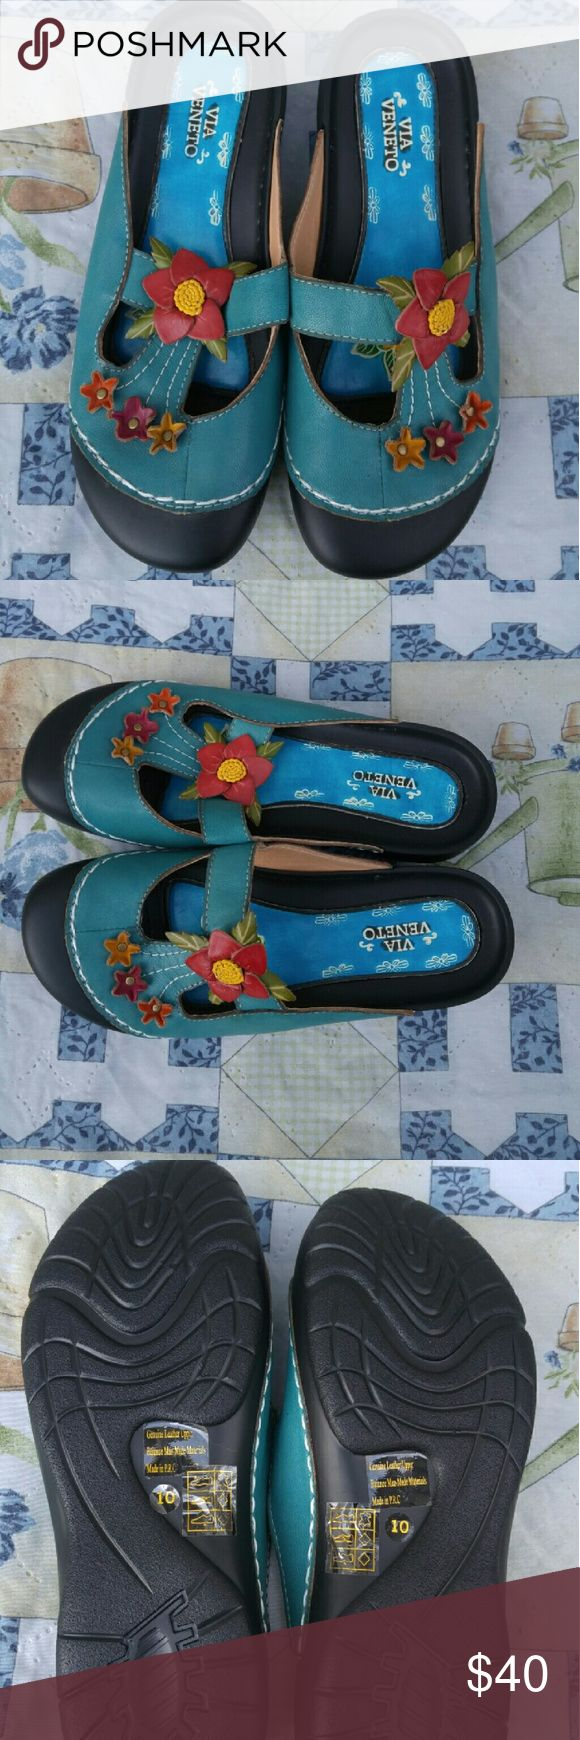 Via Veneto Mules Clog Slip On Shoes Via Veneto Women's Sz 10 Mules Clogs Slip On Blue Flowered Shoes. New without tag/box. Please see photos for details. Thank you for looking. Via Veneto  Shoes Mules & Clogs